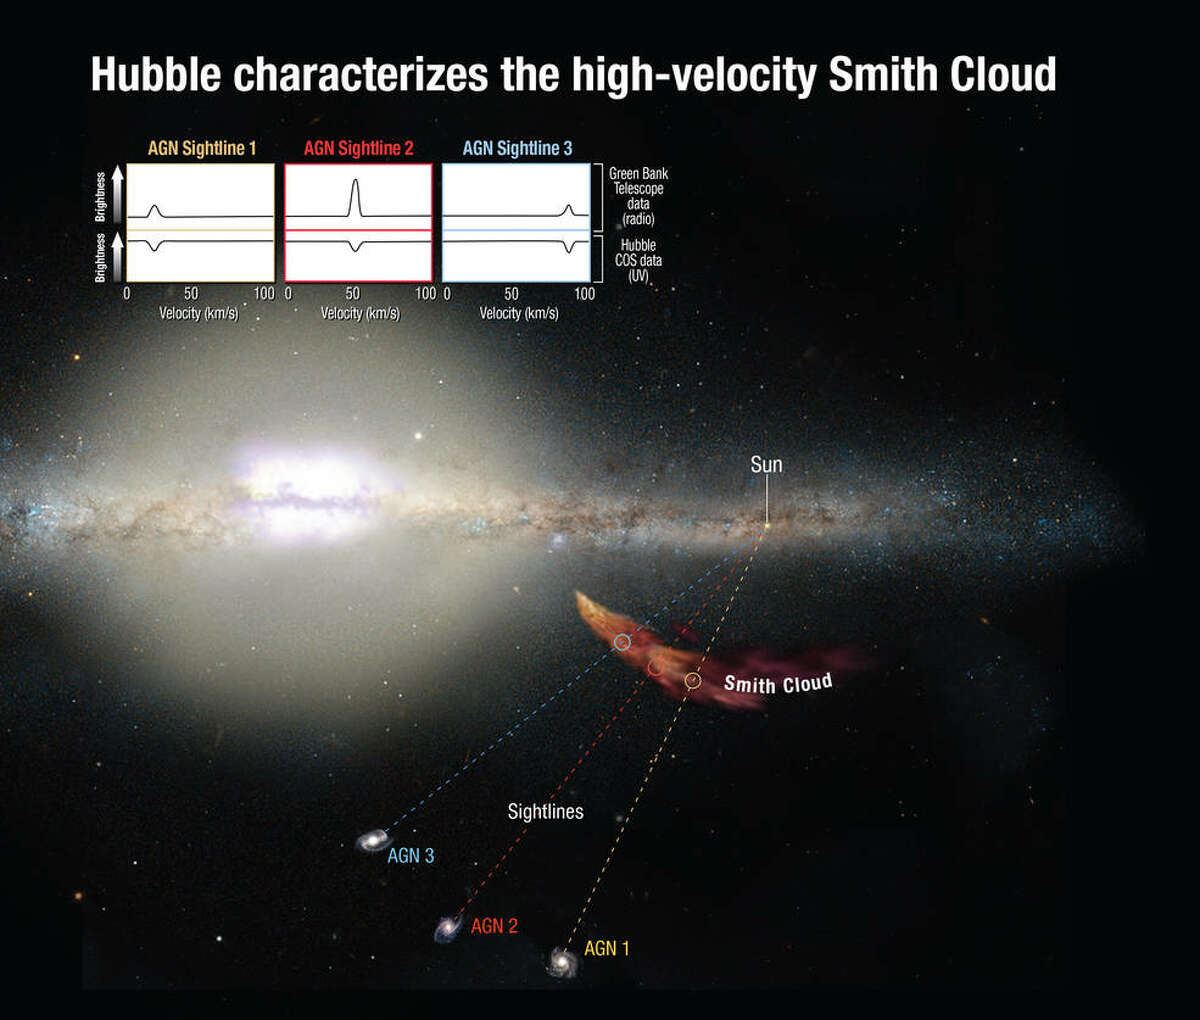 NASA caption: Hubble's Cosmic Origins Spectrograph can measure how the light from distant background objects is affected as it passes through the cloud, yielding clues to the chemical composition of the cloud. Astronomers trace the cloud's origin to the disk of our Milky Way. Combined ultraviolet and radio observations correlate to the cloud's infall velocities, providing solid evidence that the spectral features link to the cloud's dynamics. Credits: NASA/ESA/A. Feild (STScI)